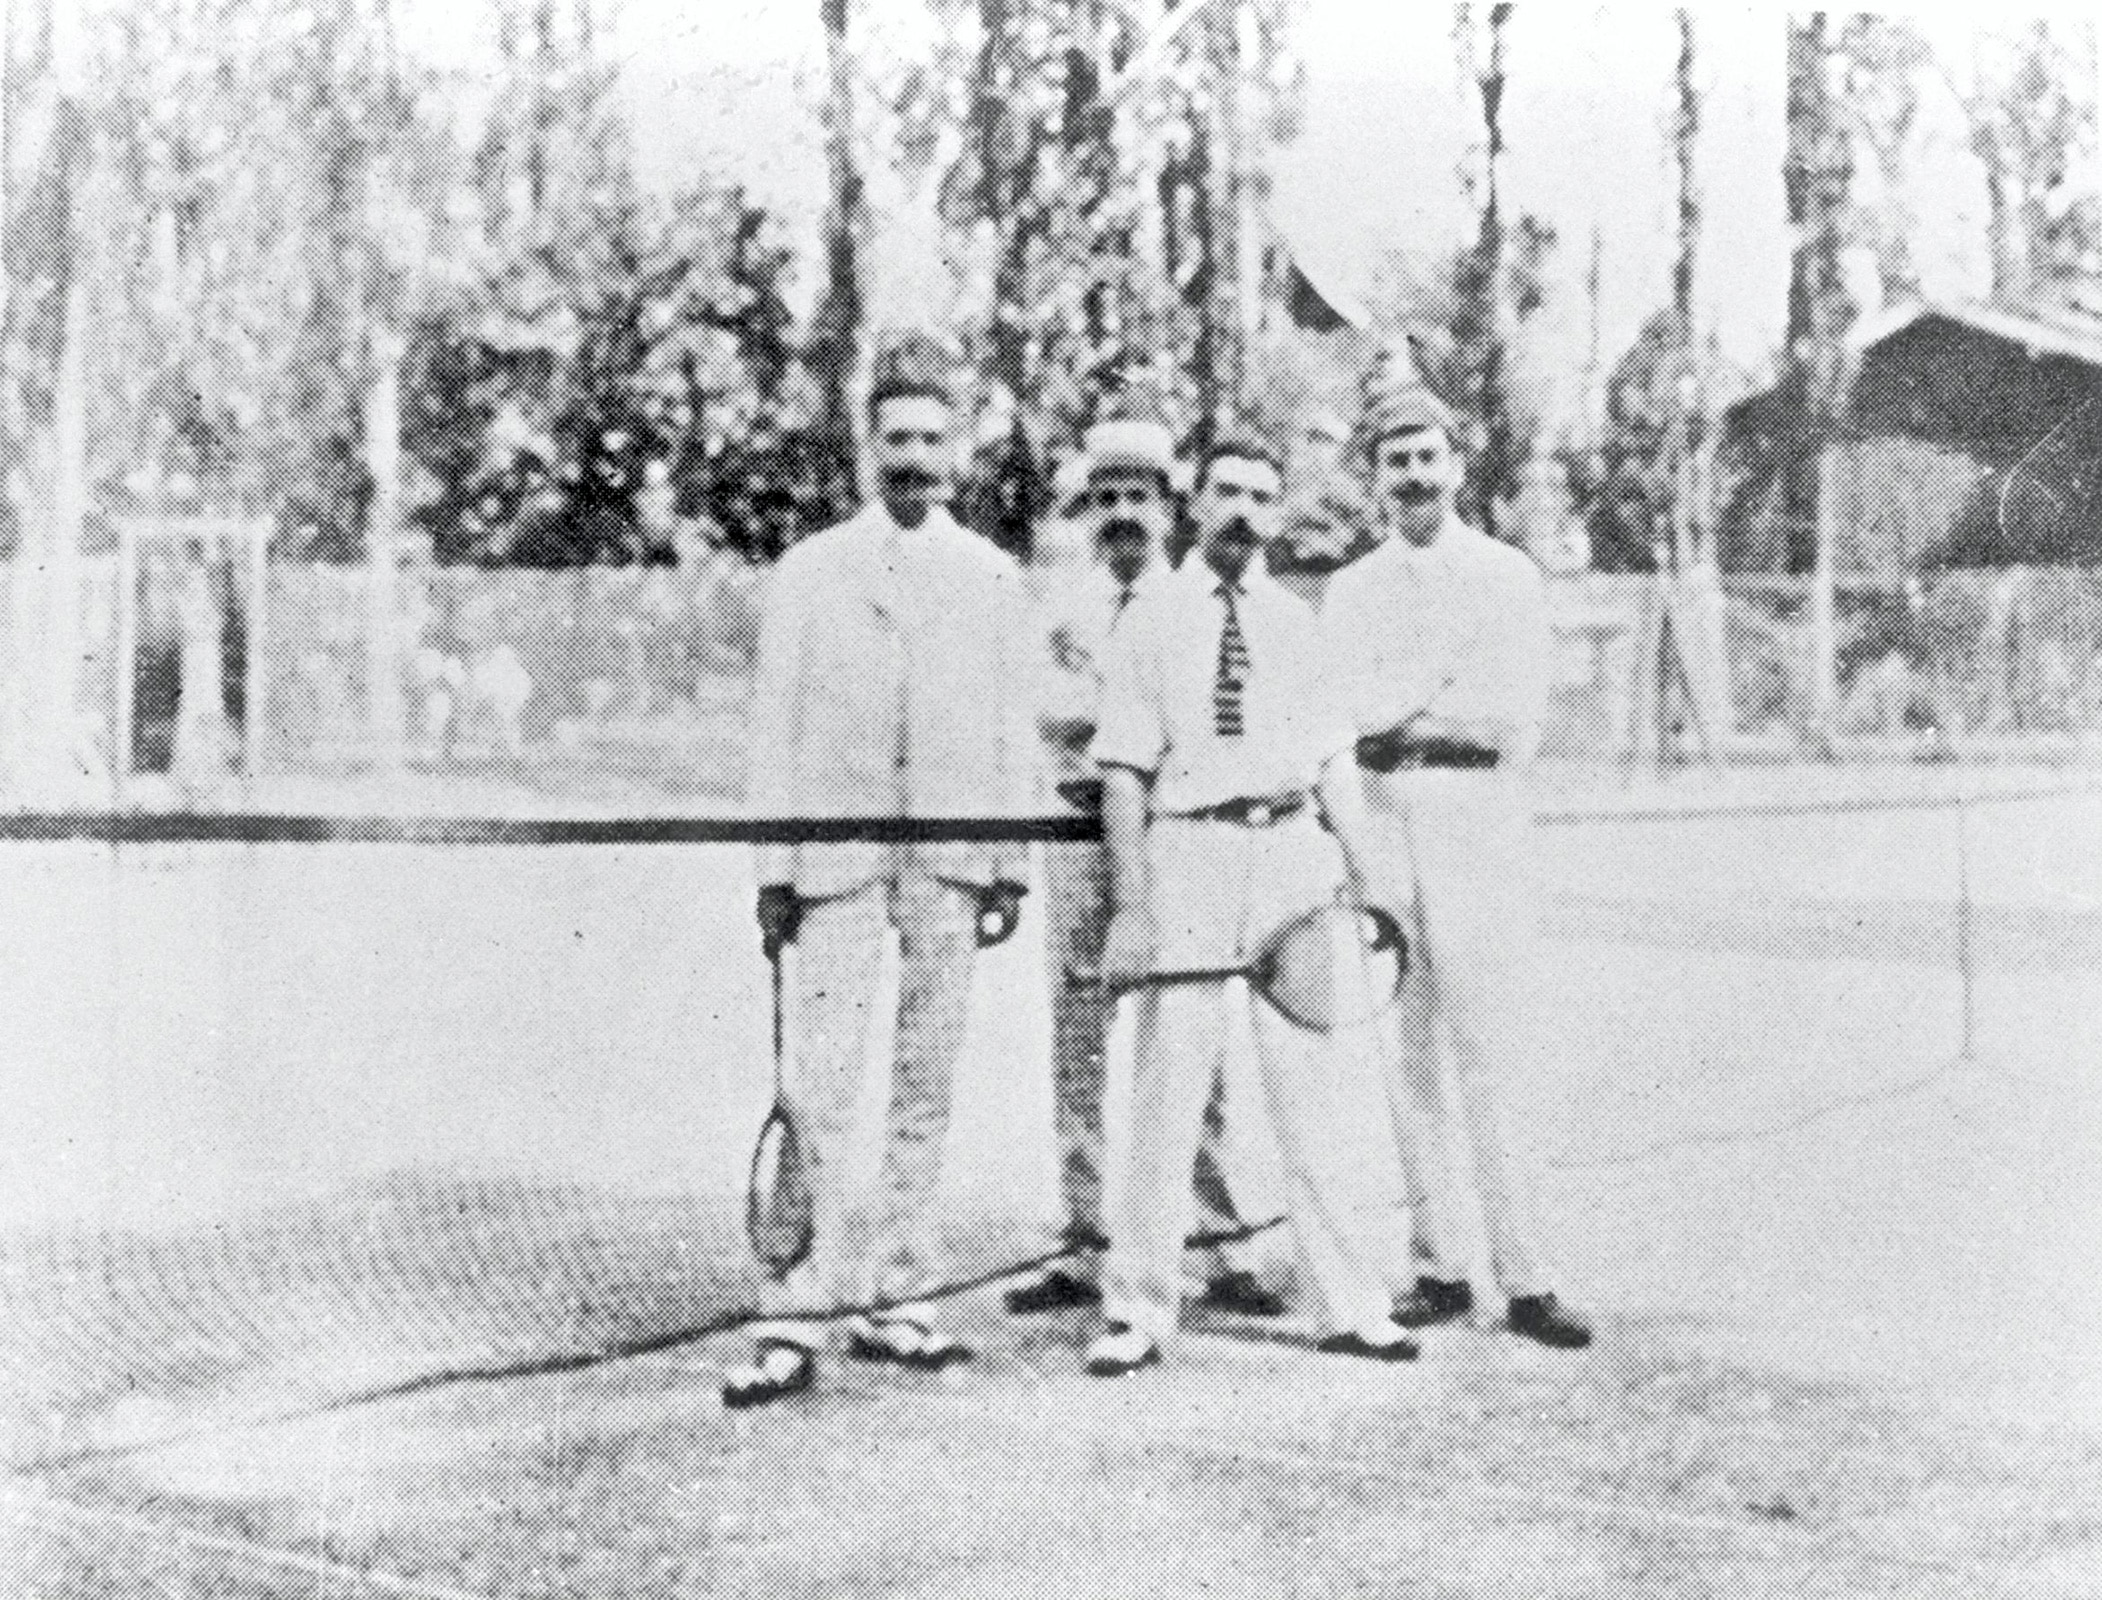 Baron Pierre de COUBERTIN on a tennis court.